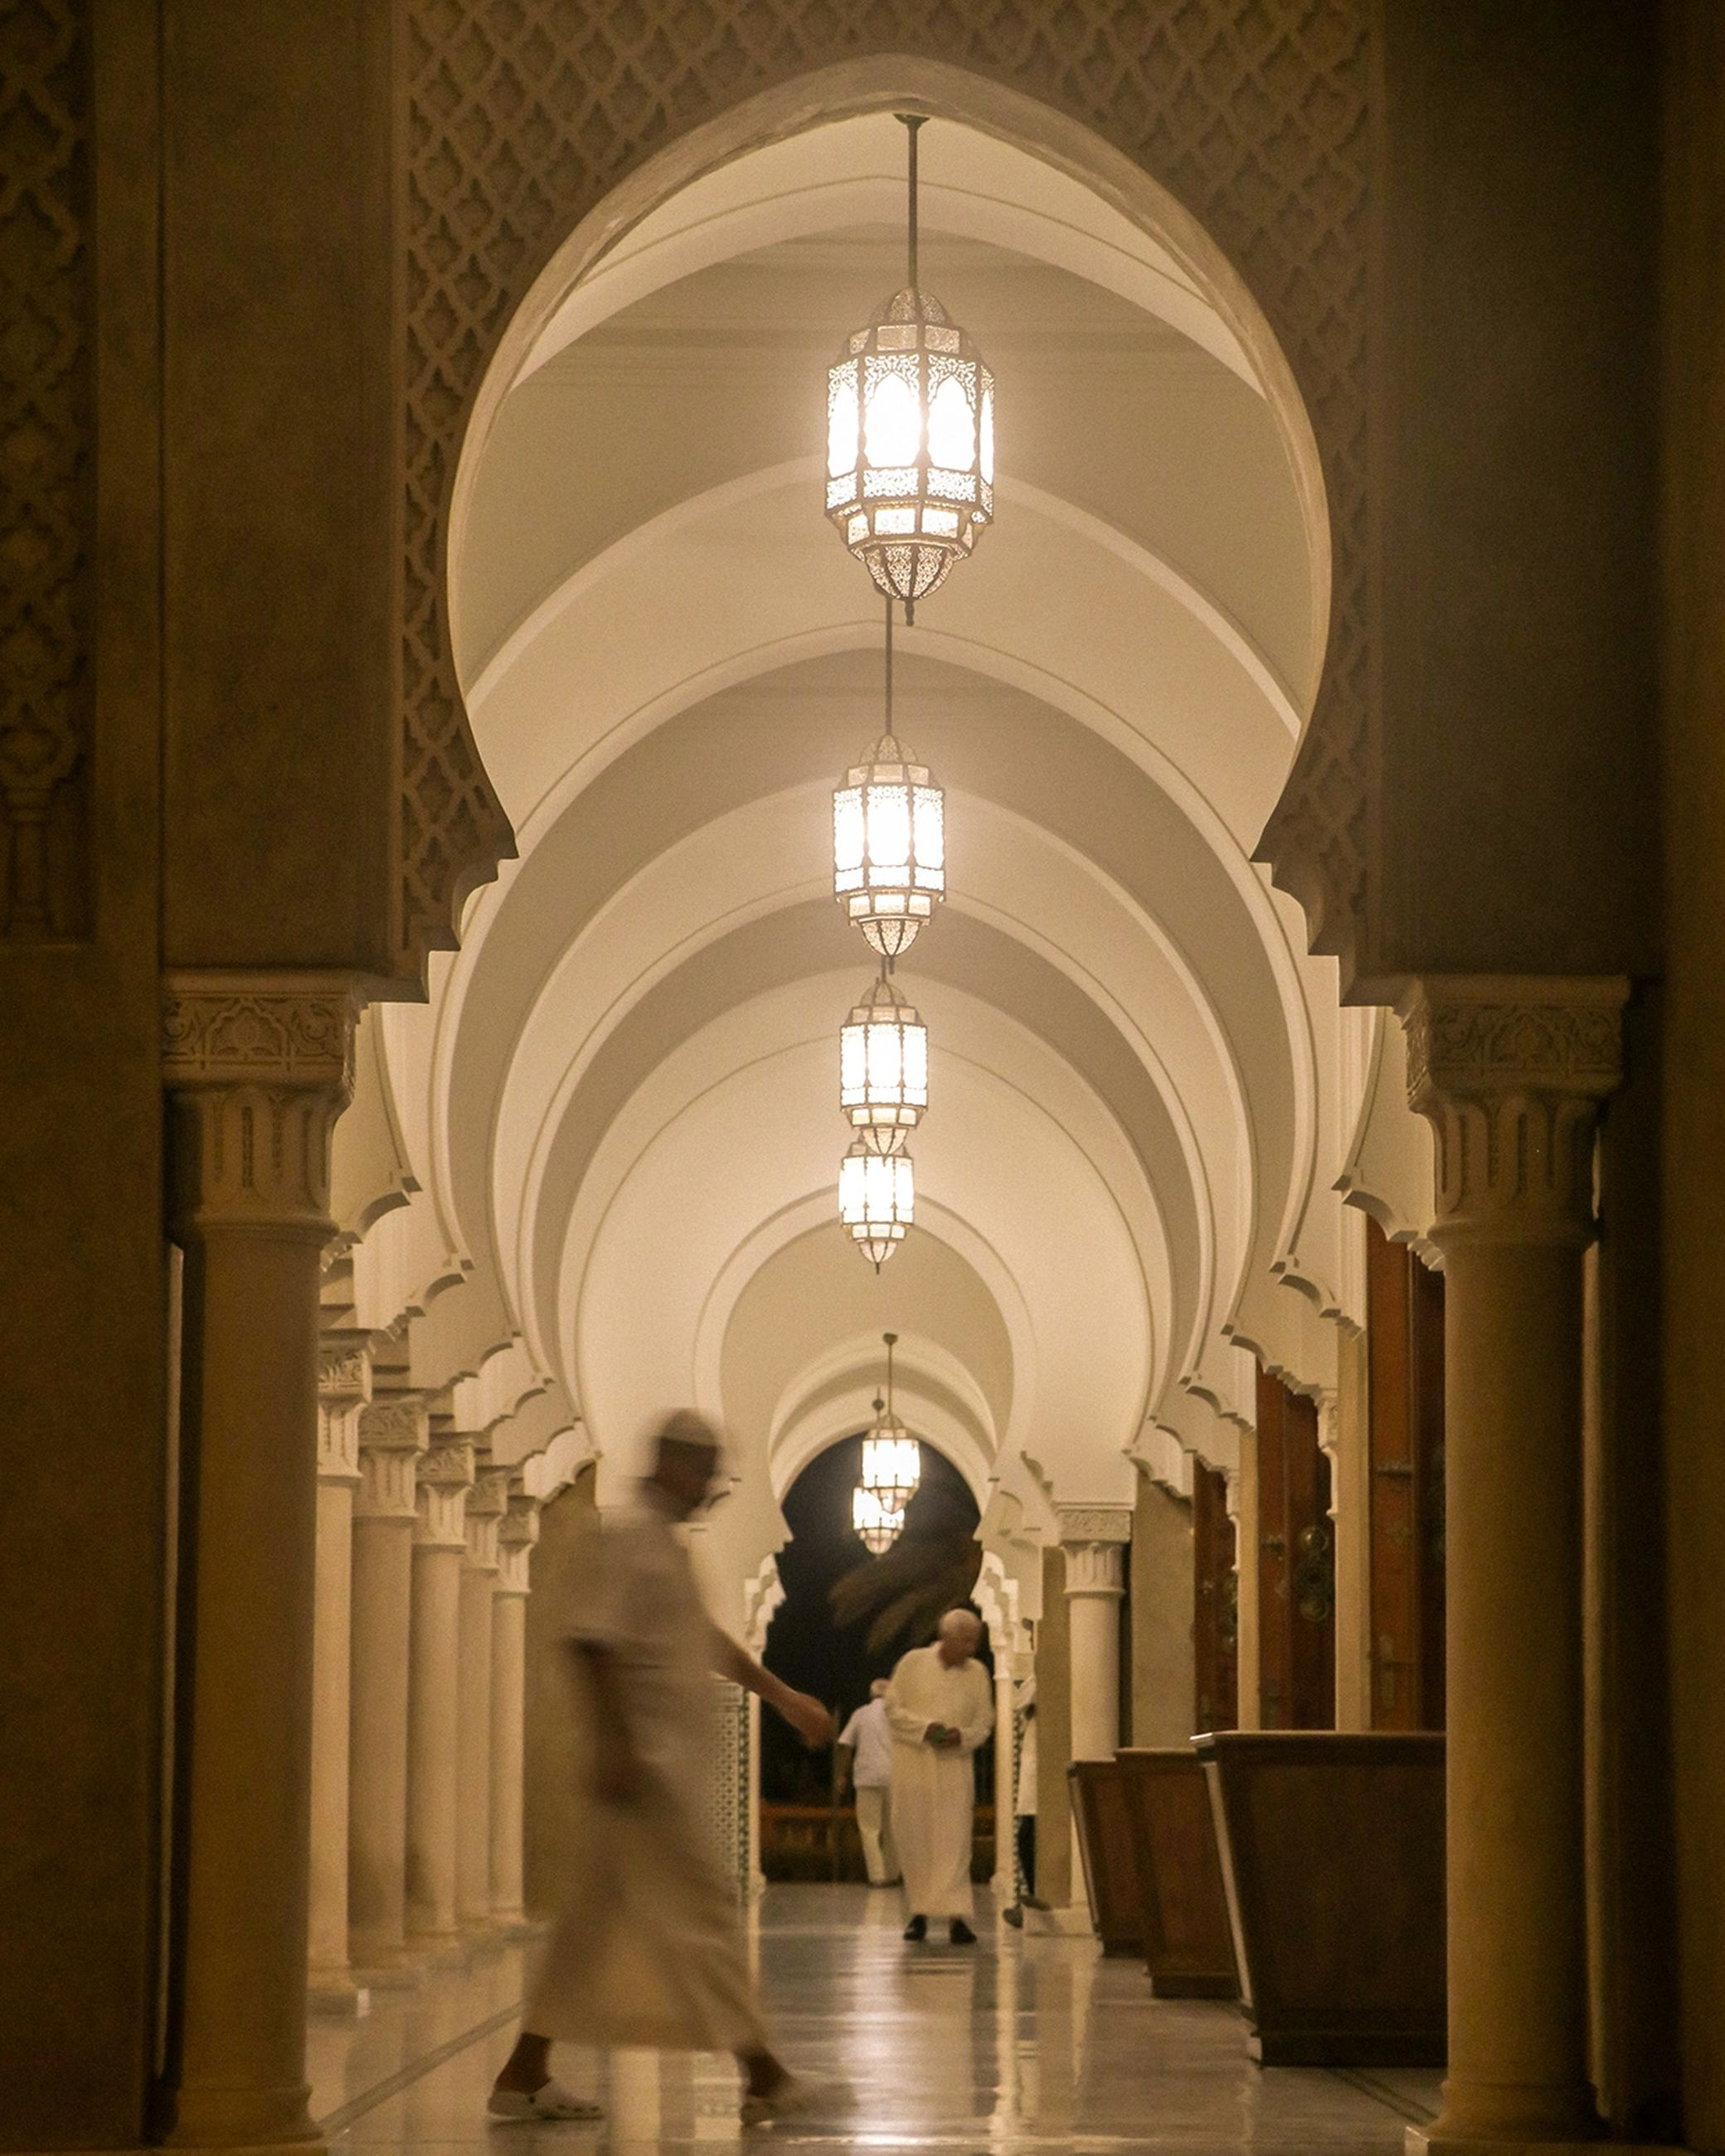 architecture, arcade, arch, built structure, corridor, walking, indoors, illuminated, architectural column, building, men, lighting equipment, real people, motion, in a row, adult, women, people, lifestyles, two people, ceiling, couple - relationship, electric lamp